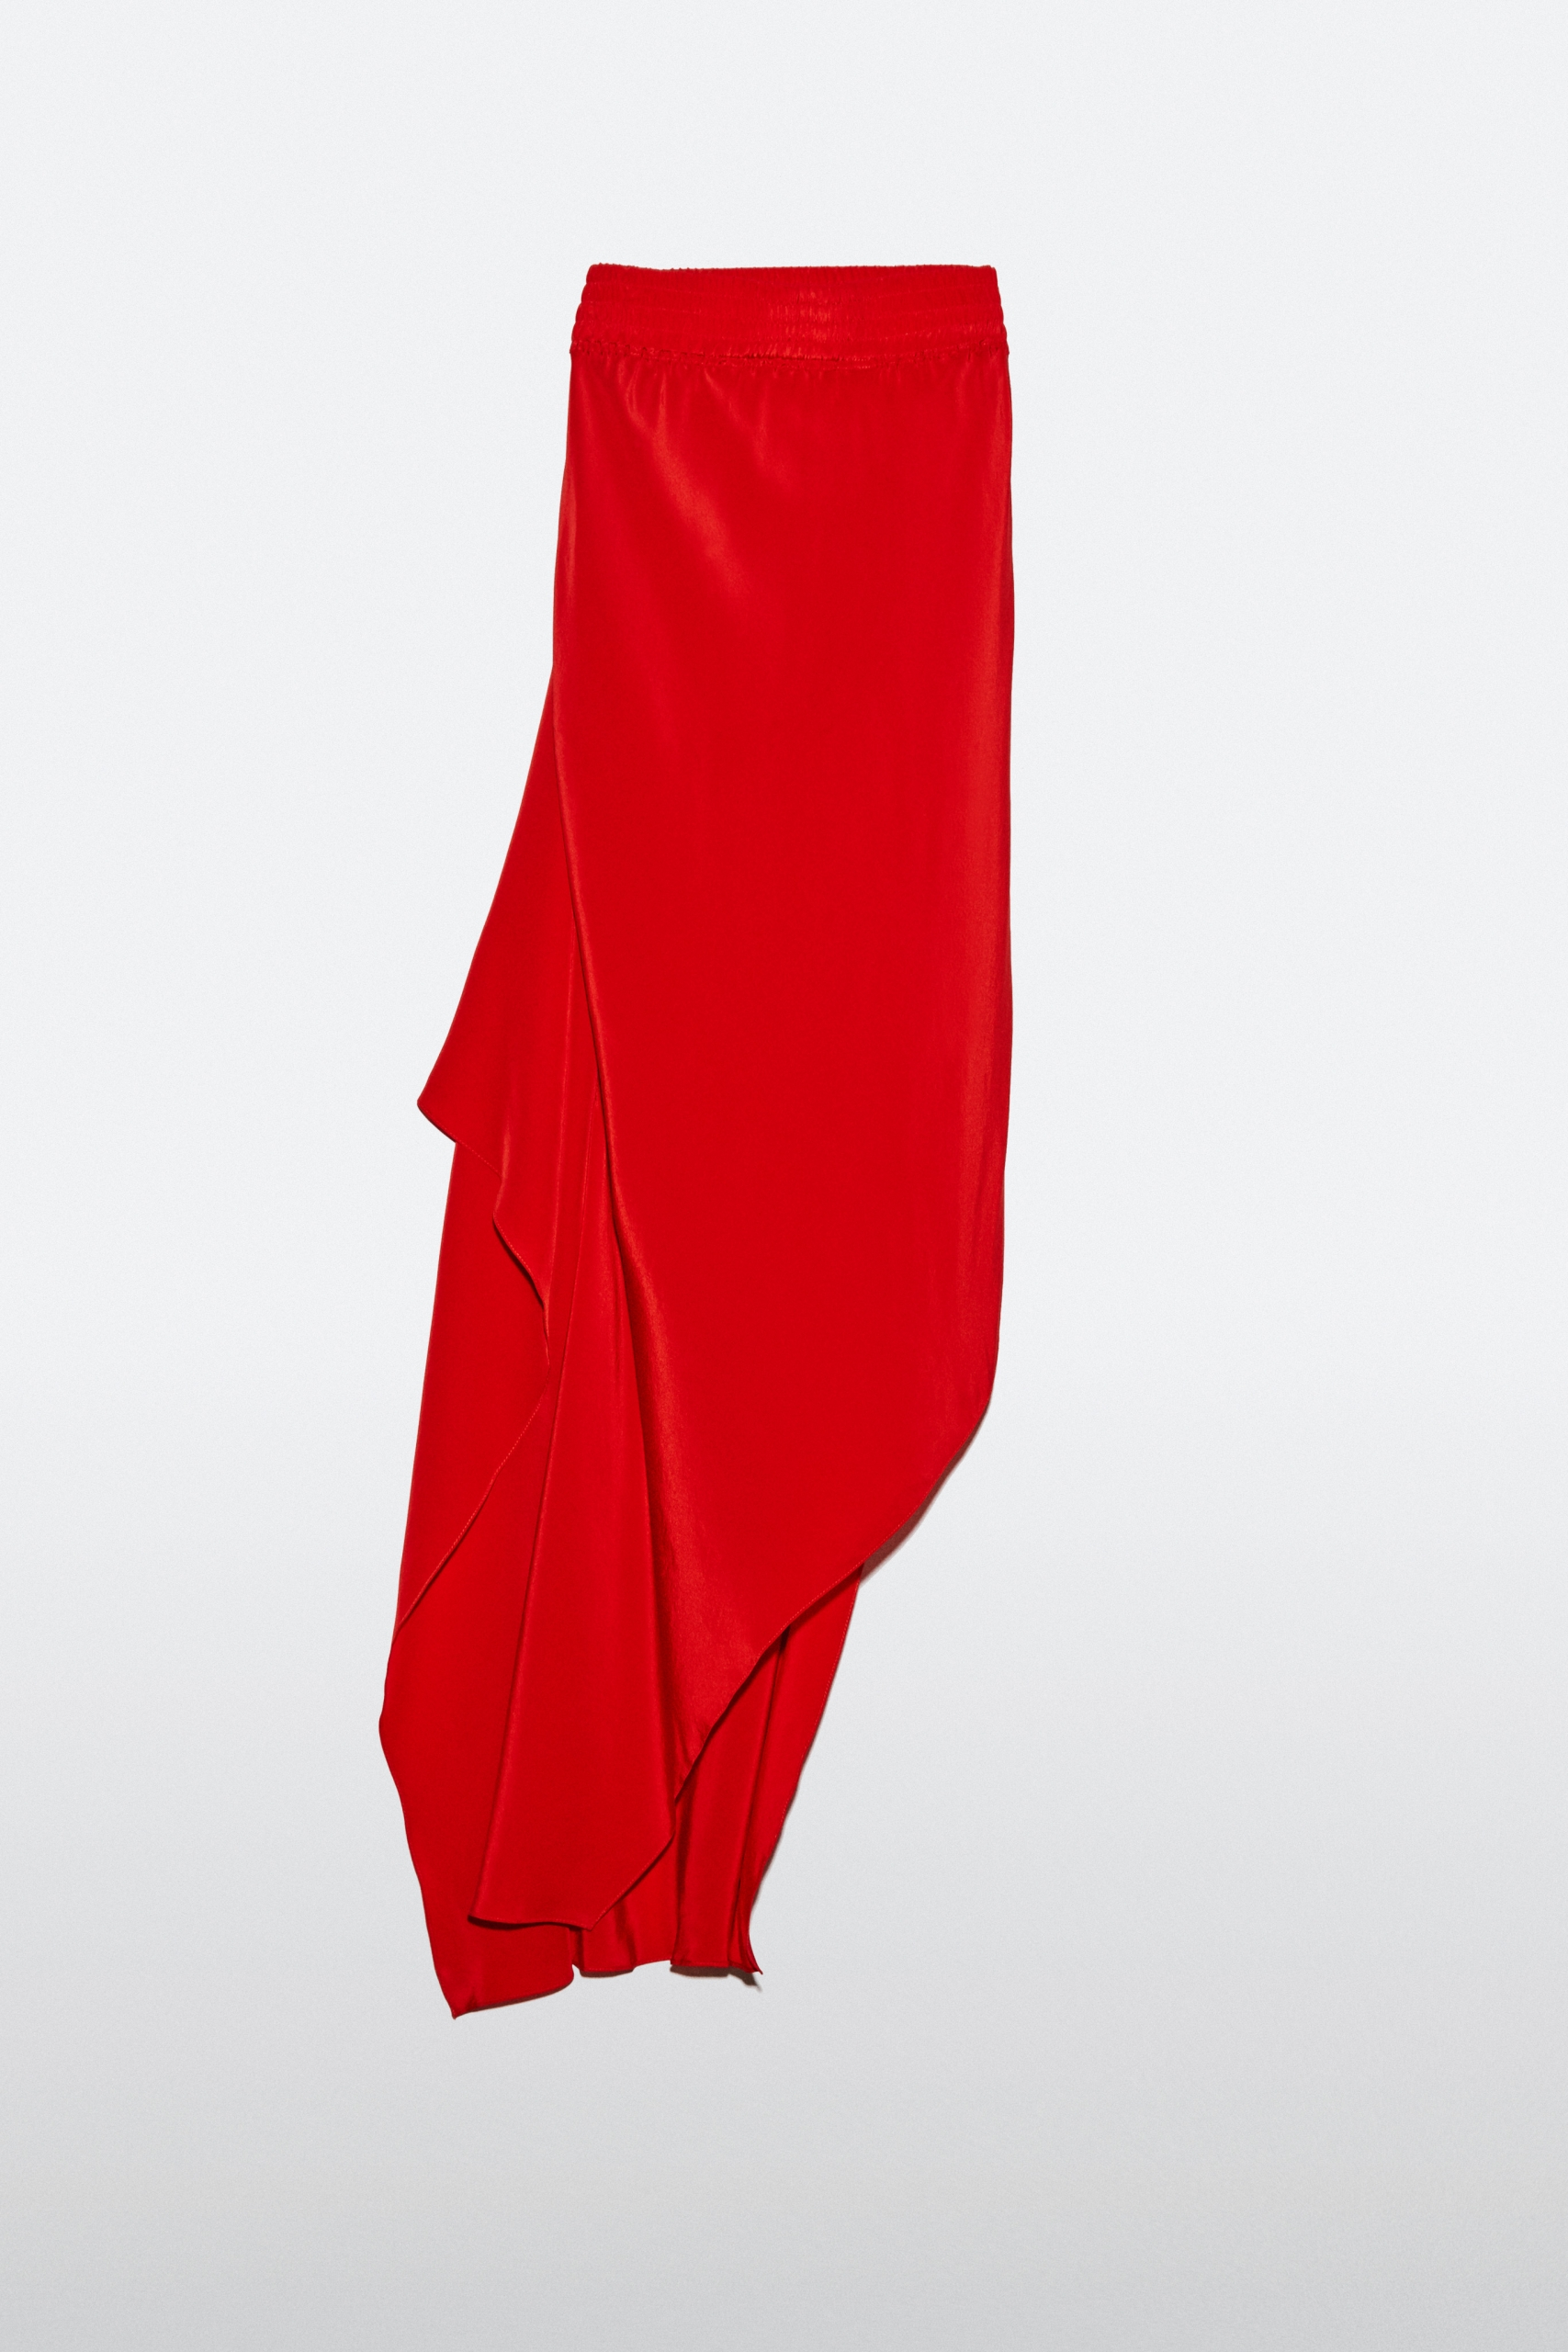 ©OBANDO | ROUGE SENTIMENTAL SKIRT 2 scaled